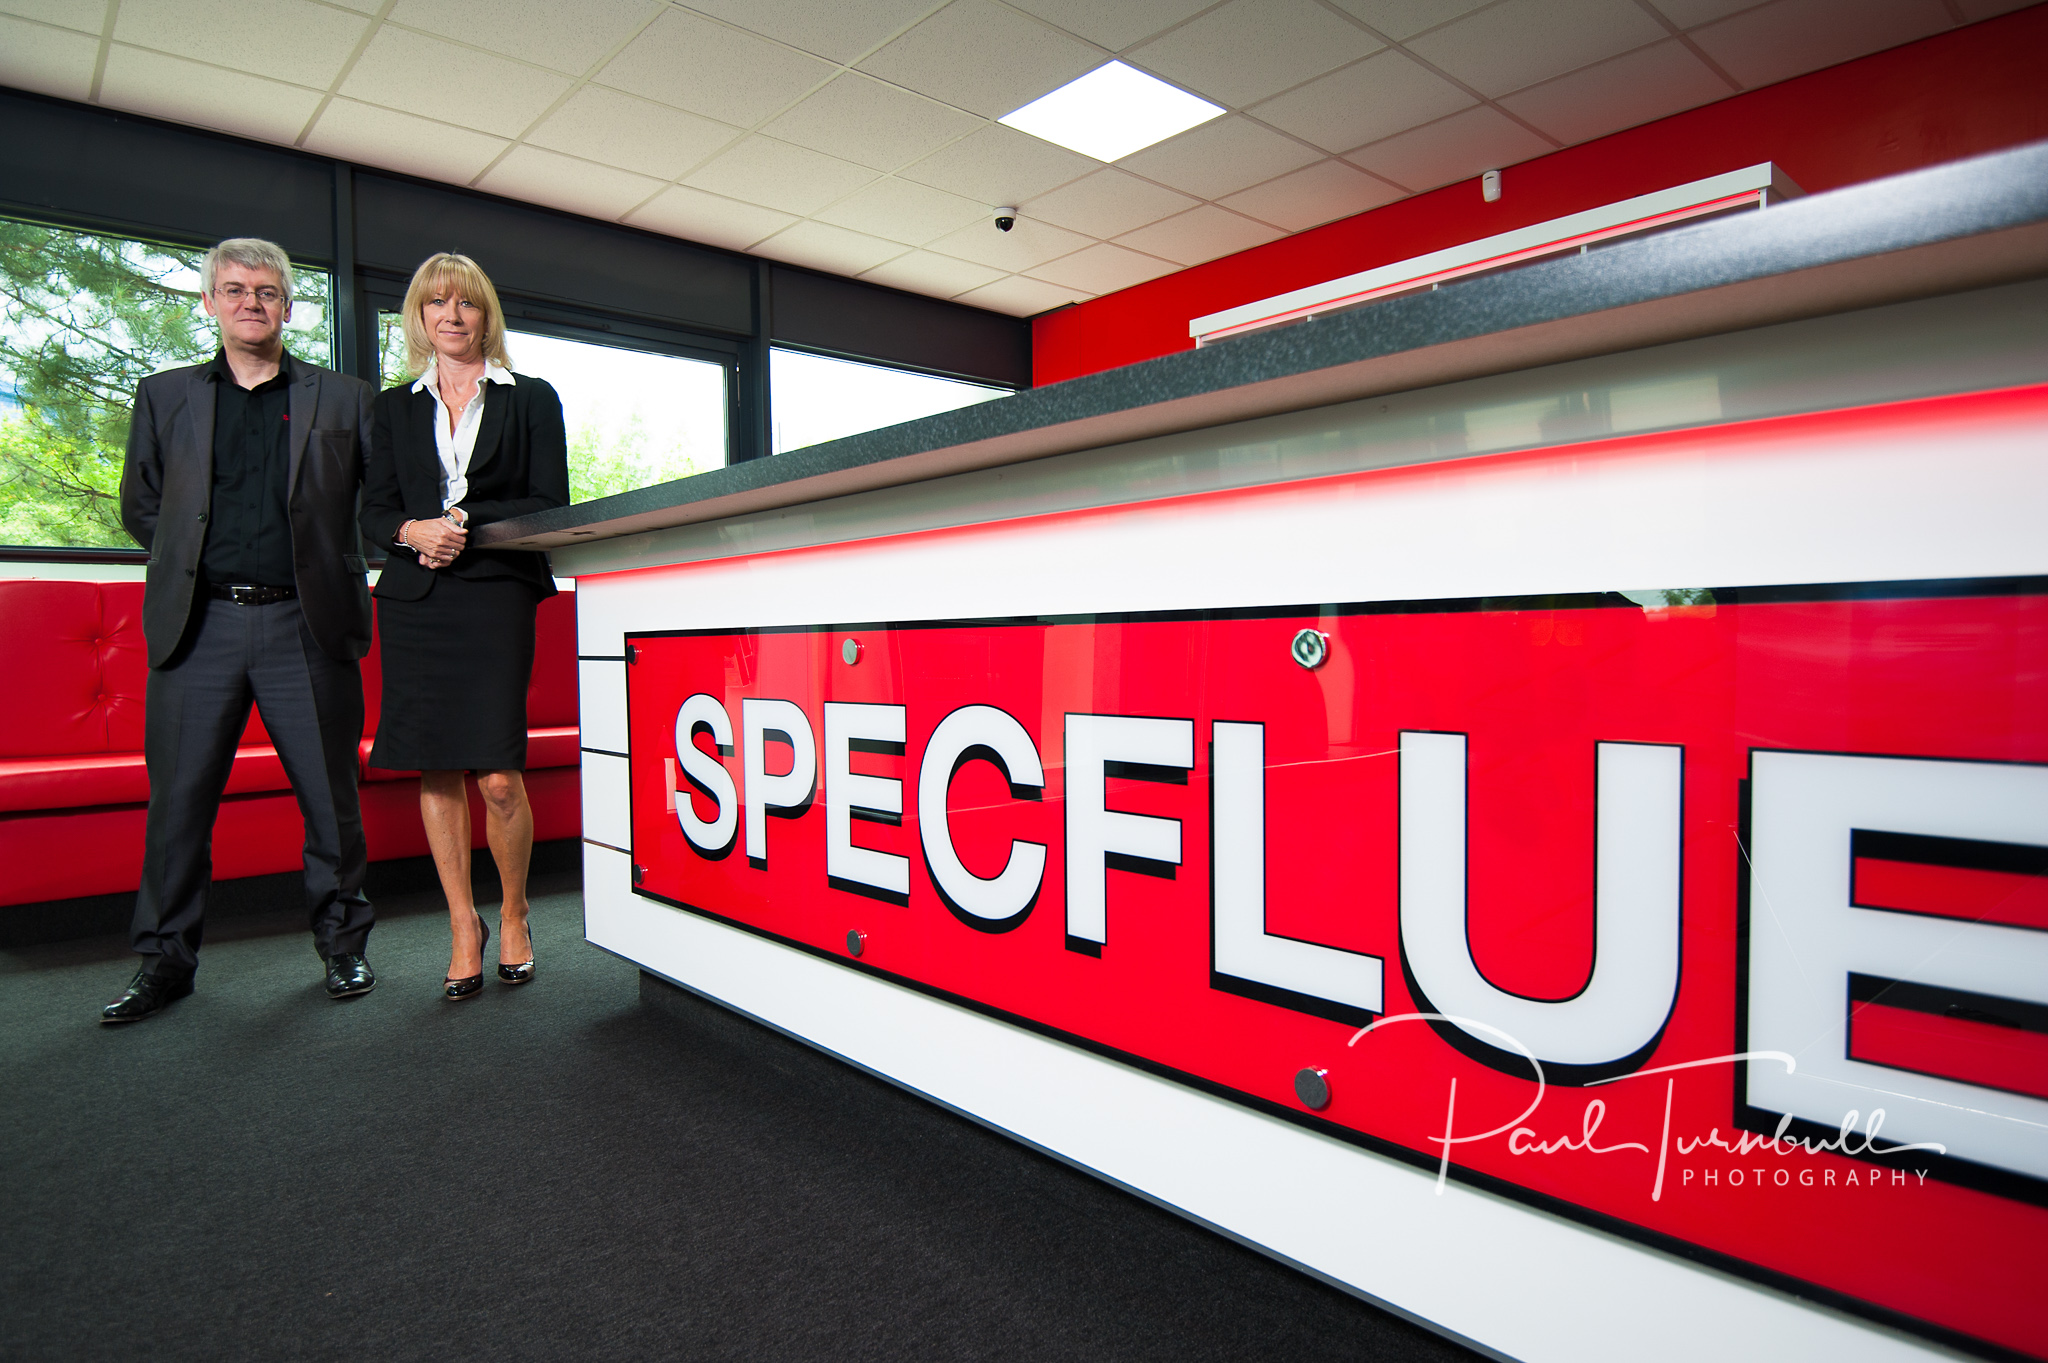 commercial-pr-photographer-leeds-yorkshire-specflue-006.jpg